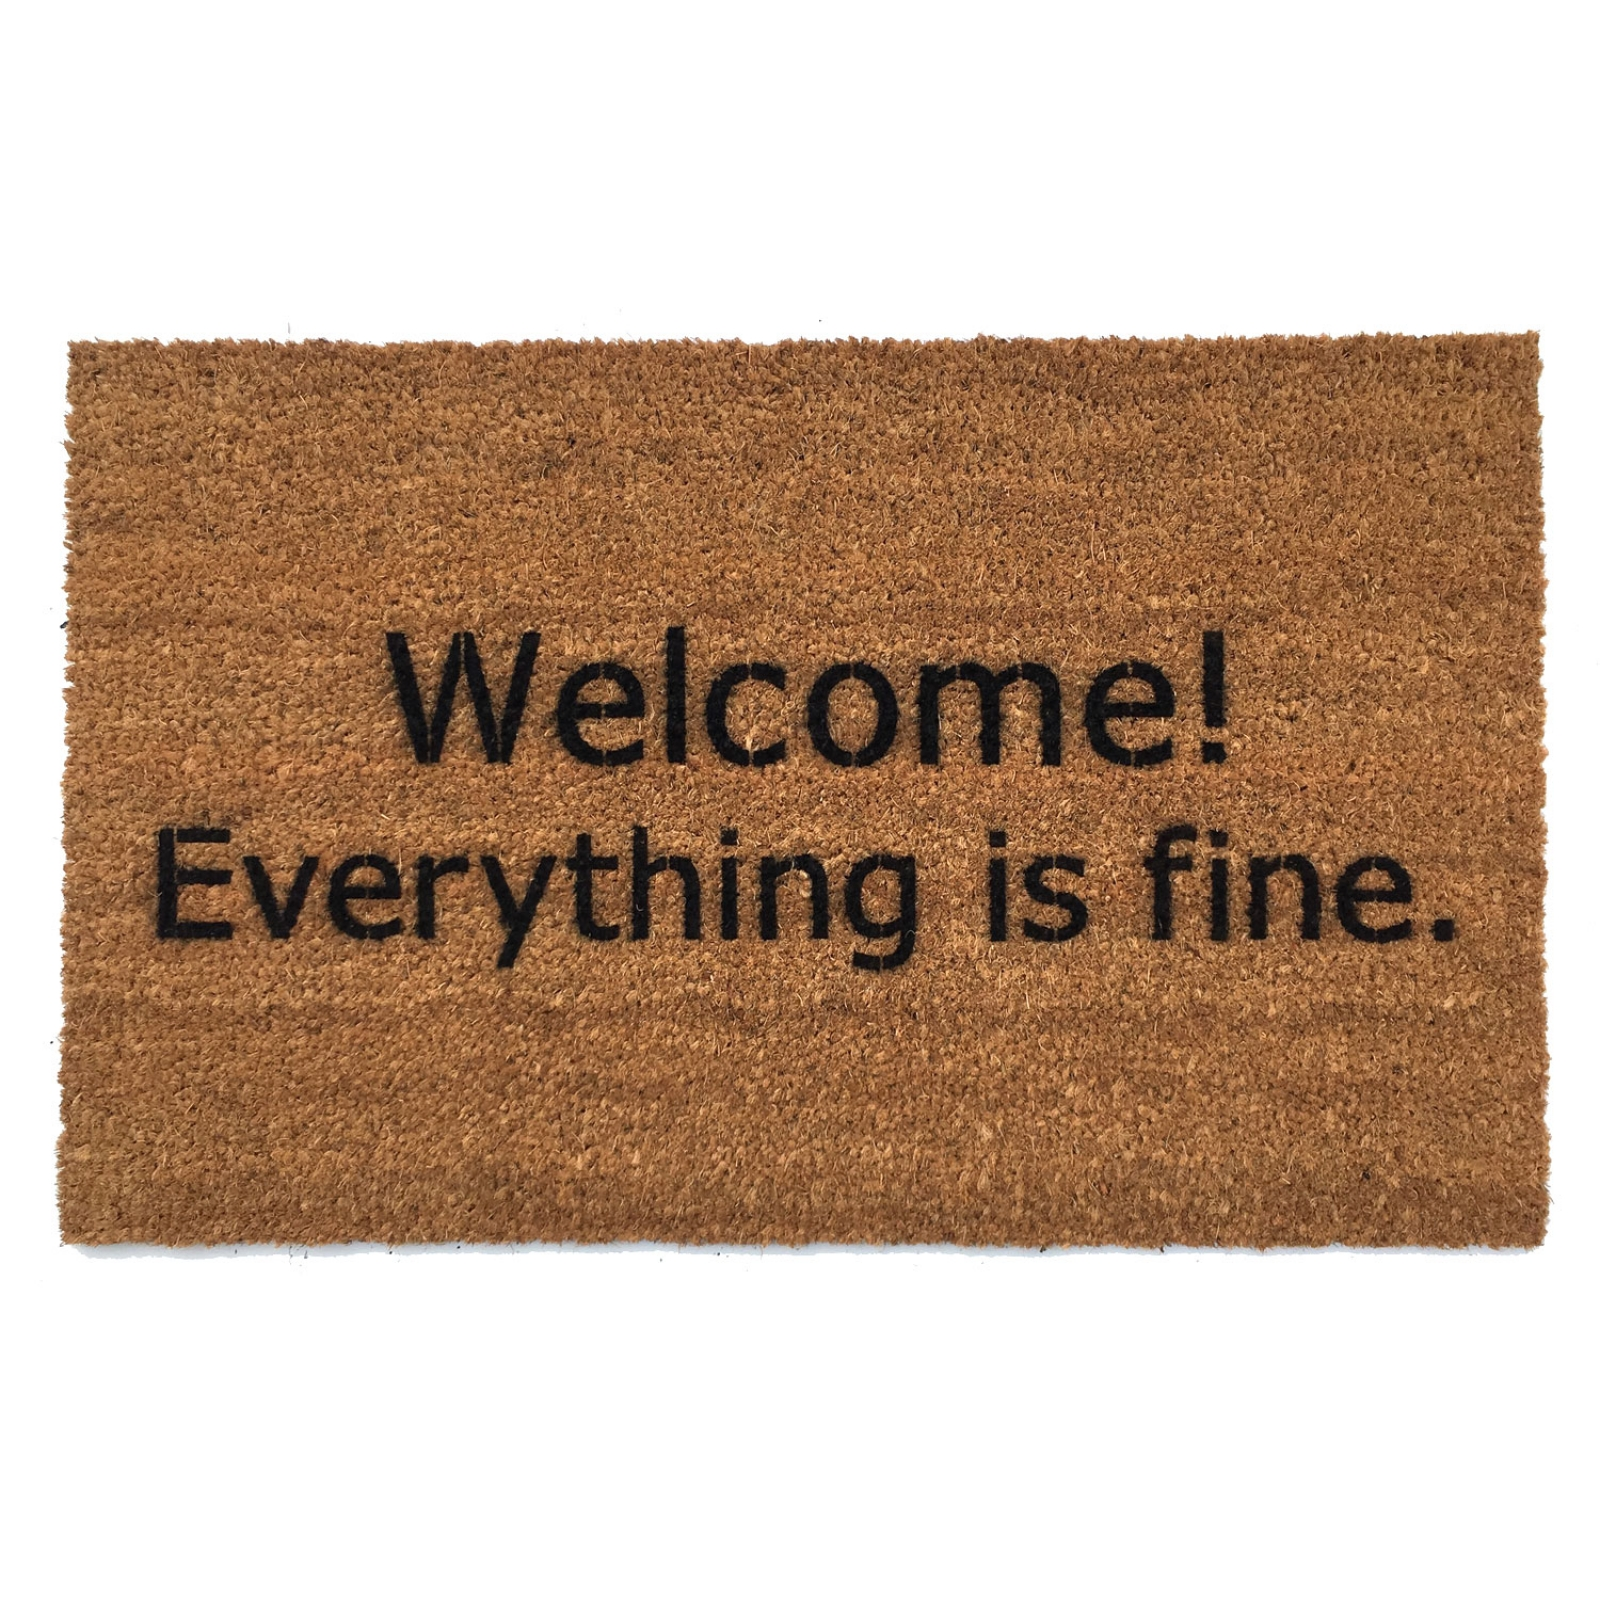 Is Your Home The Good Place Welcome Everything Is Fine